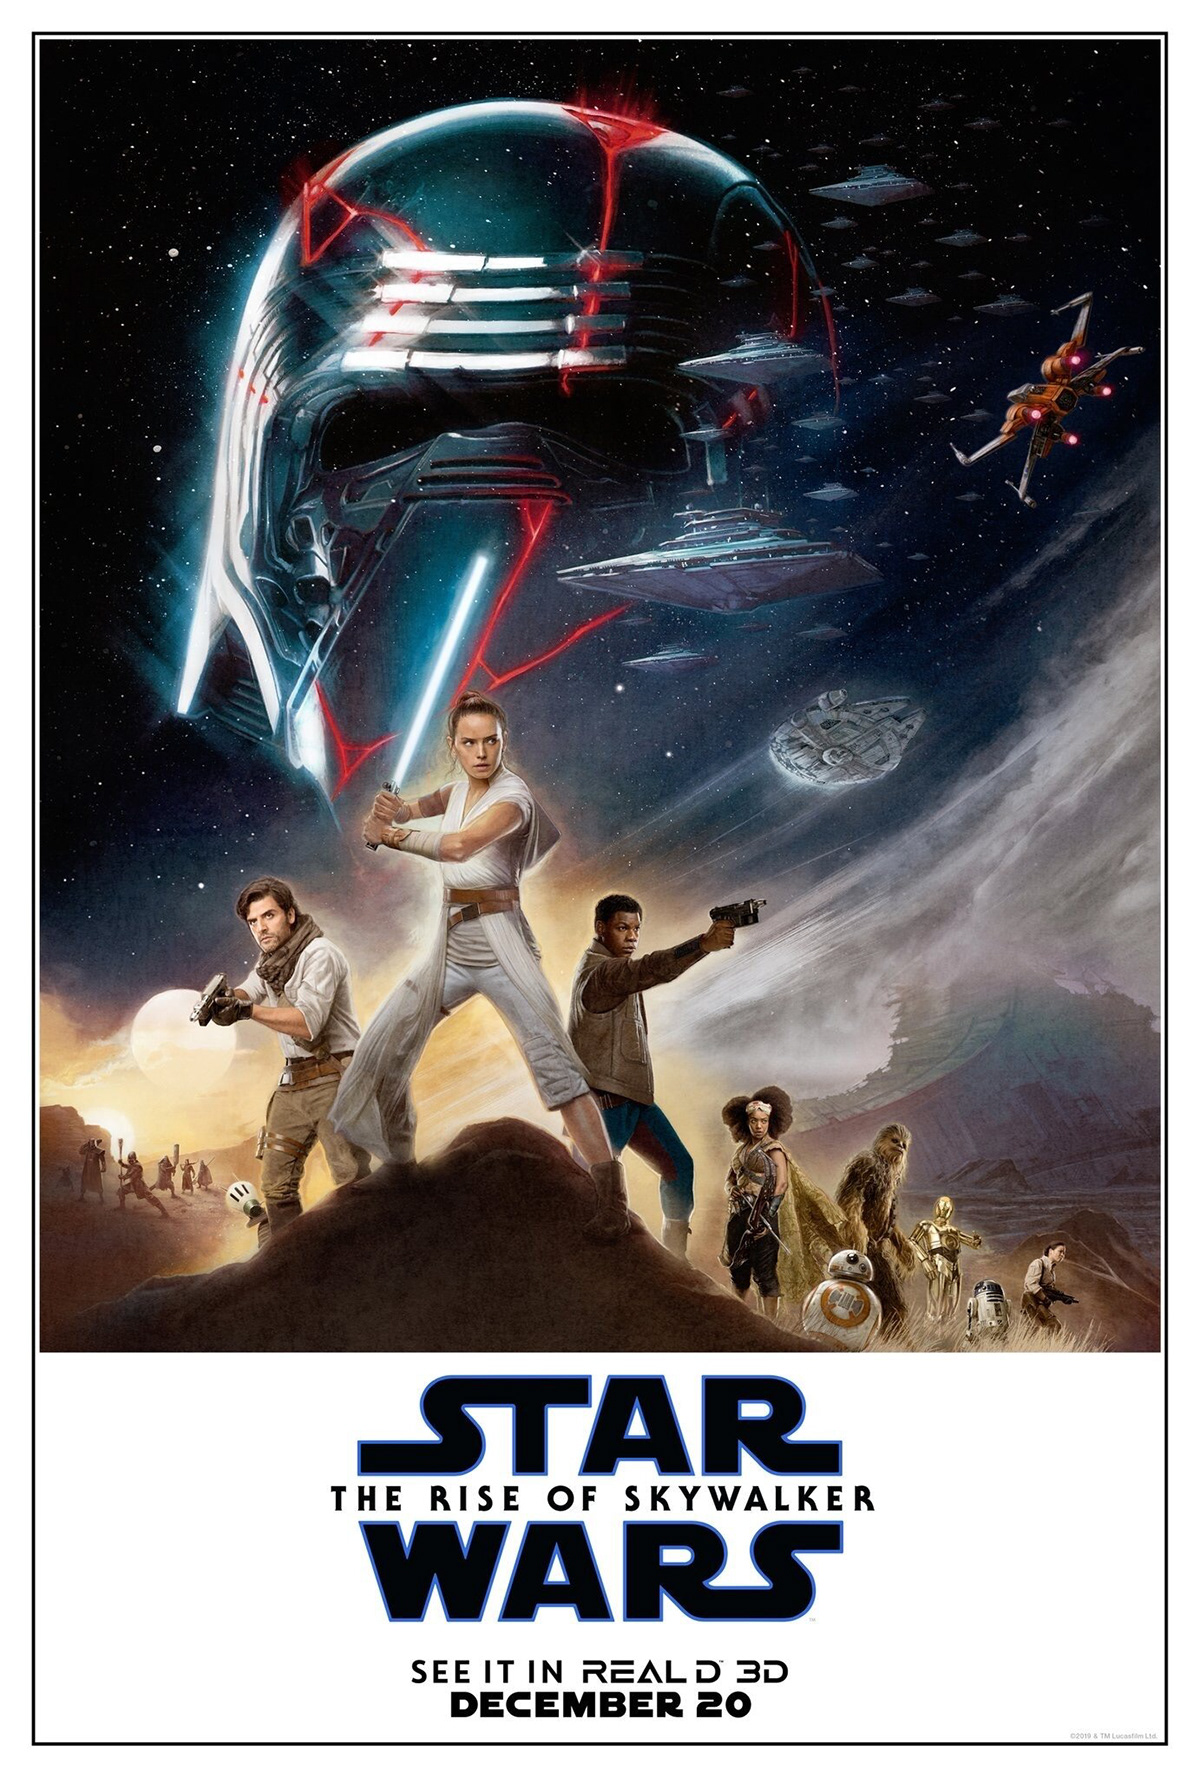 Star Wars The Rise Of Skywalker Real D 3d Poster On Behance